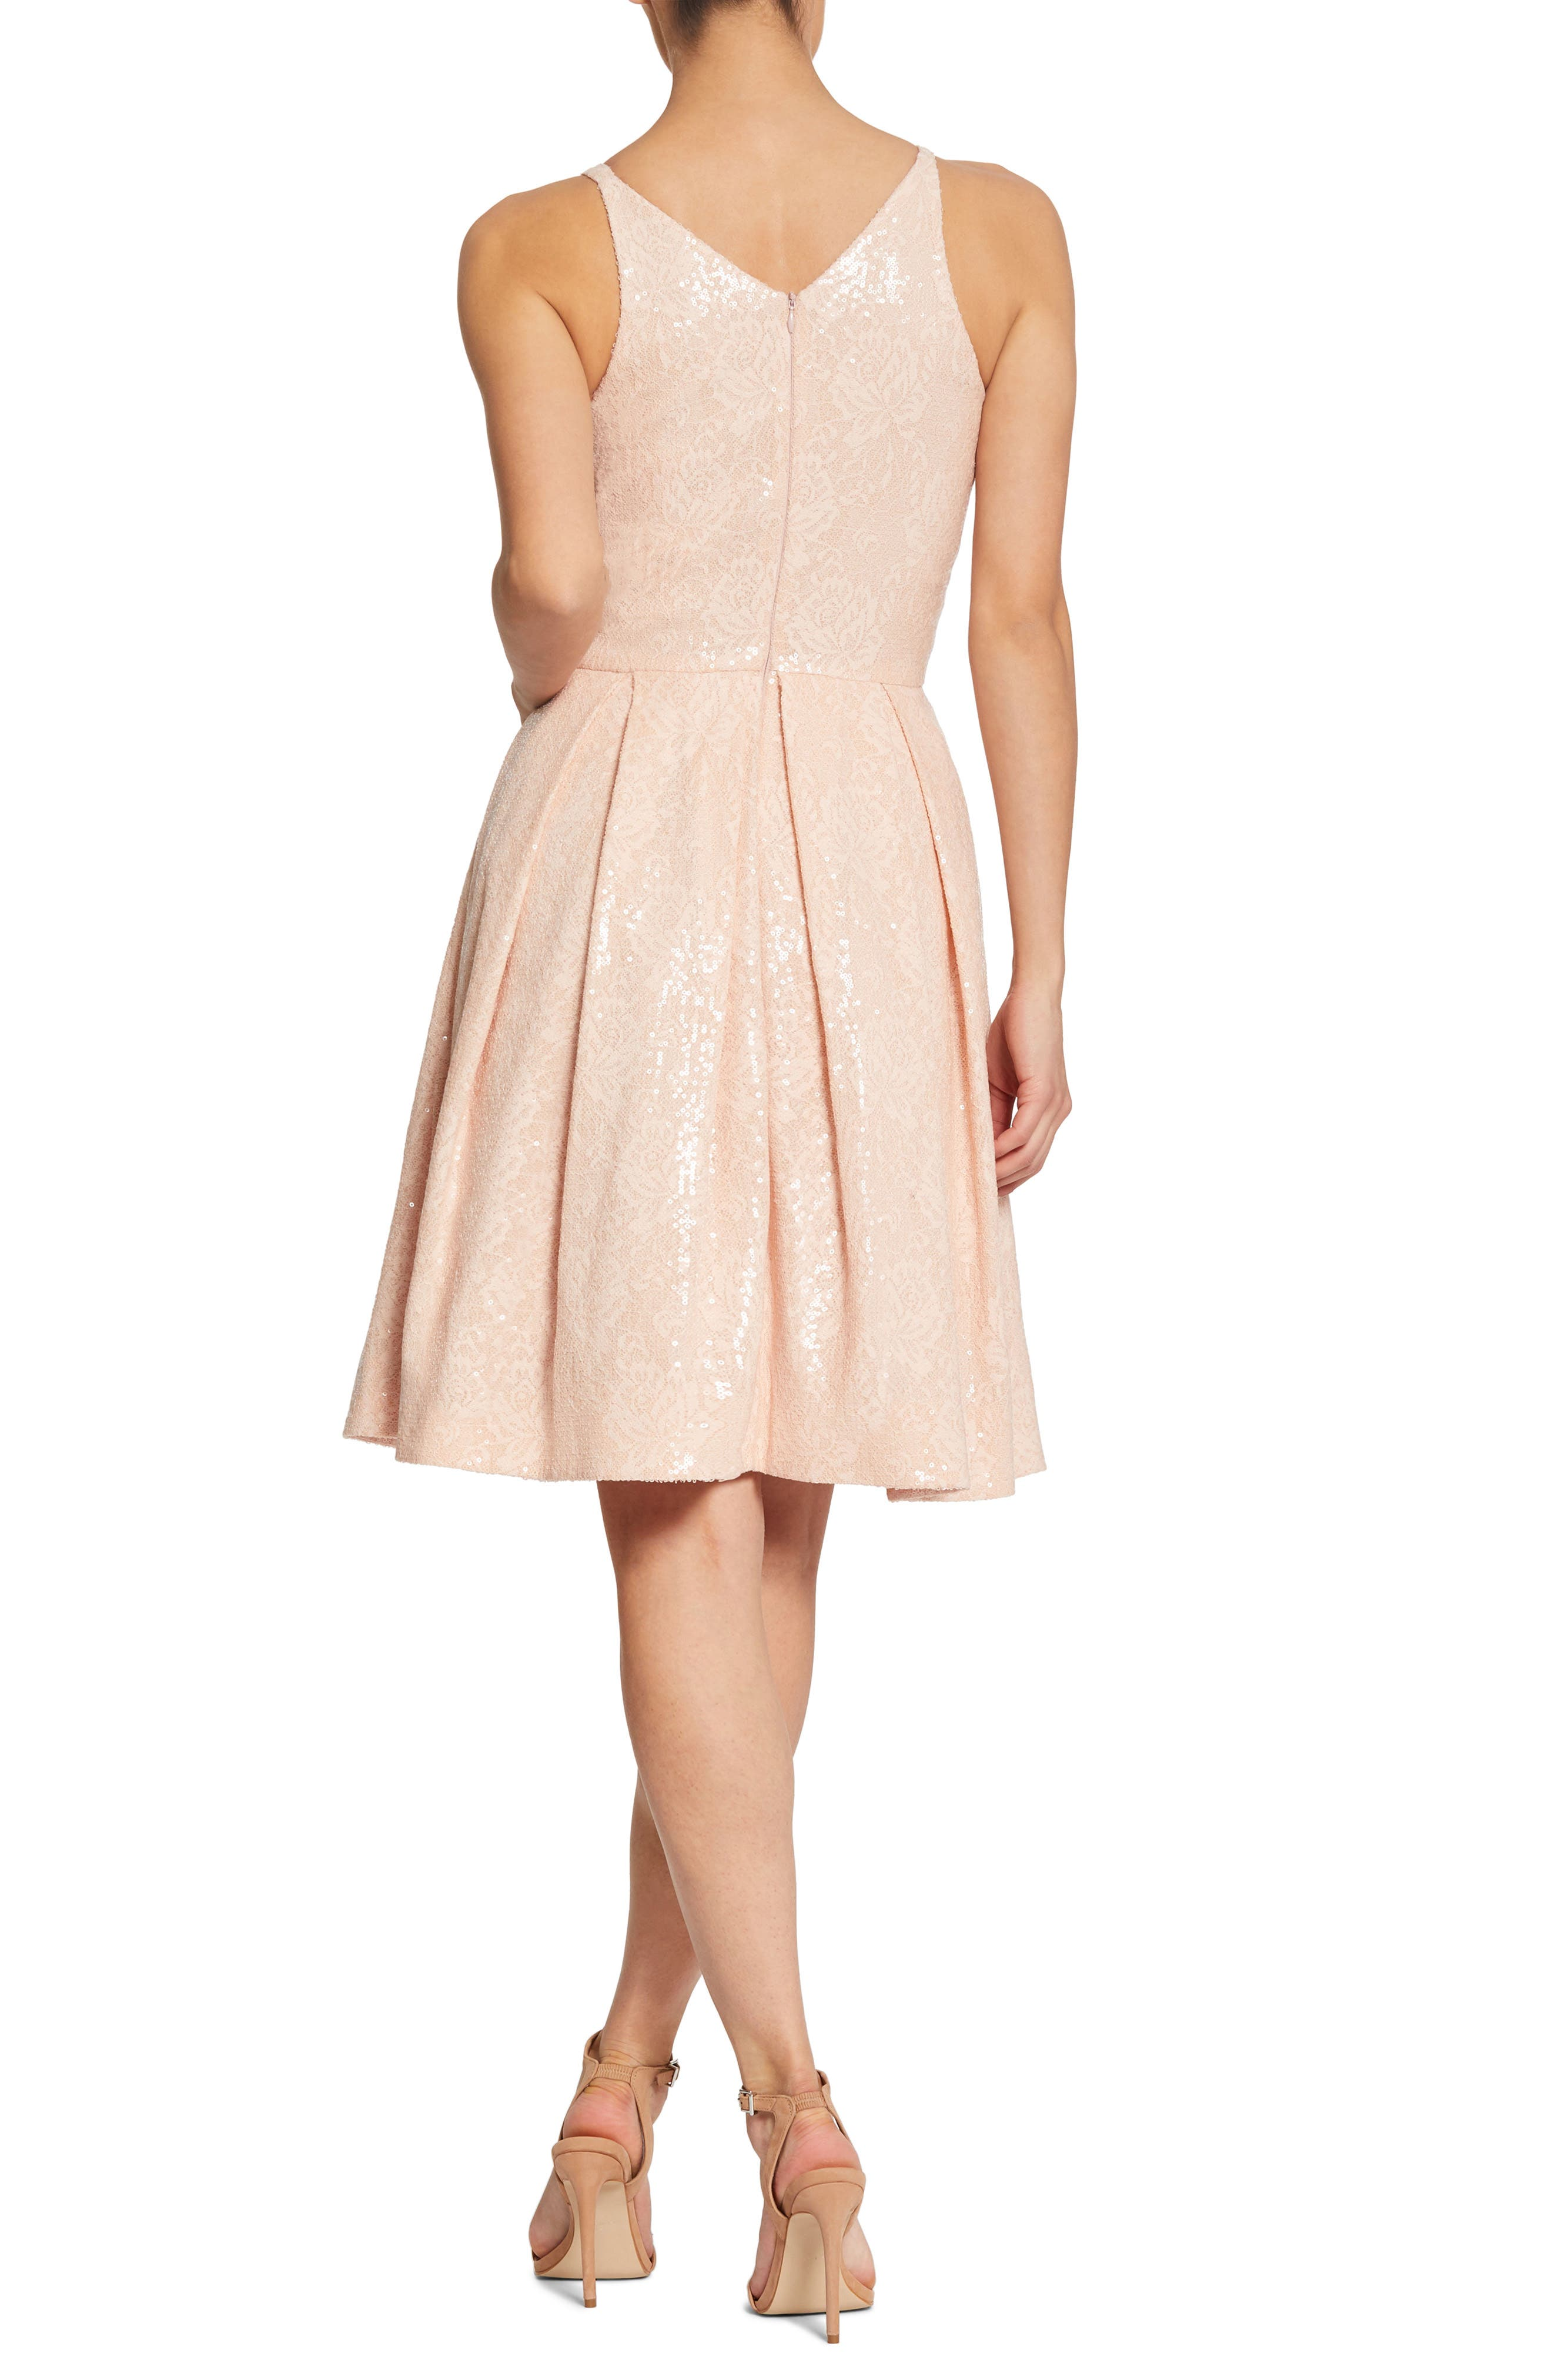 Collette Sequin Fit & Flare Dress,                             Alternate thumbnail 3, color,                             Pink/ Nude